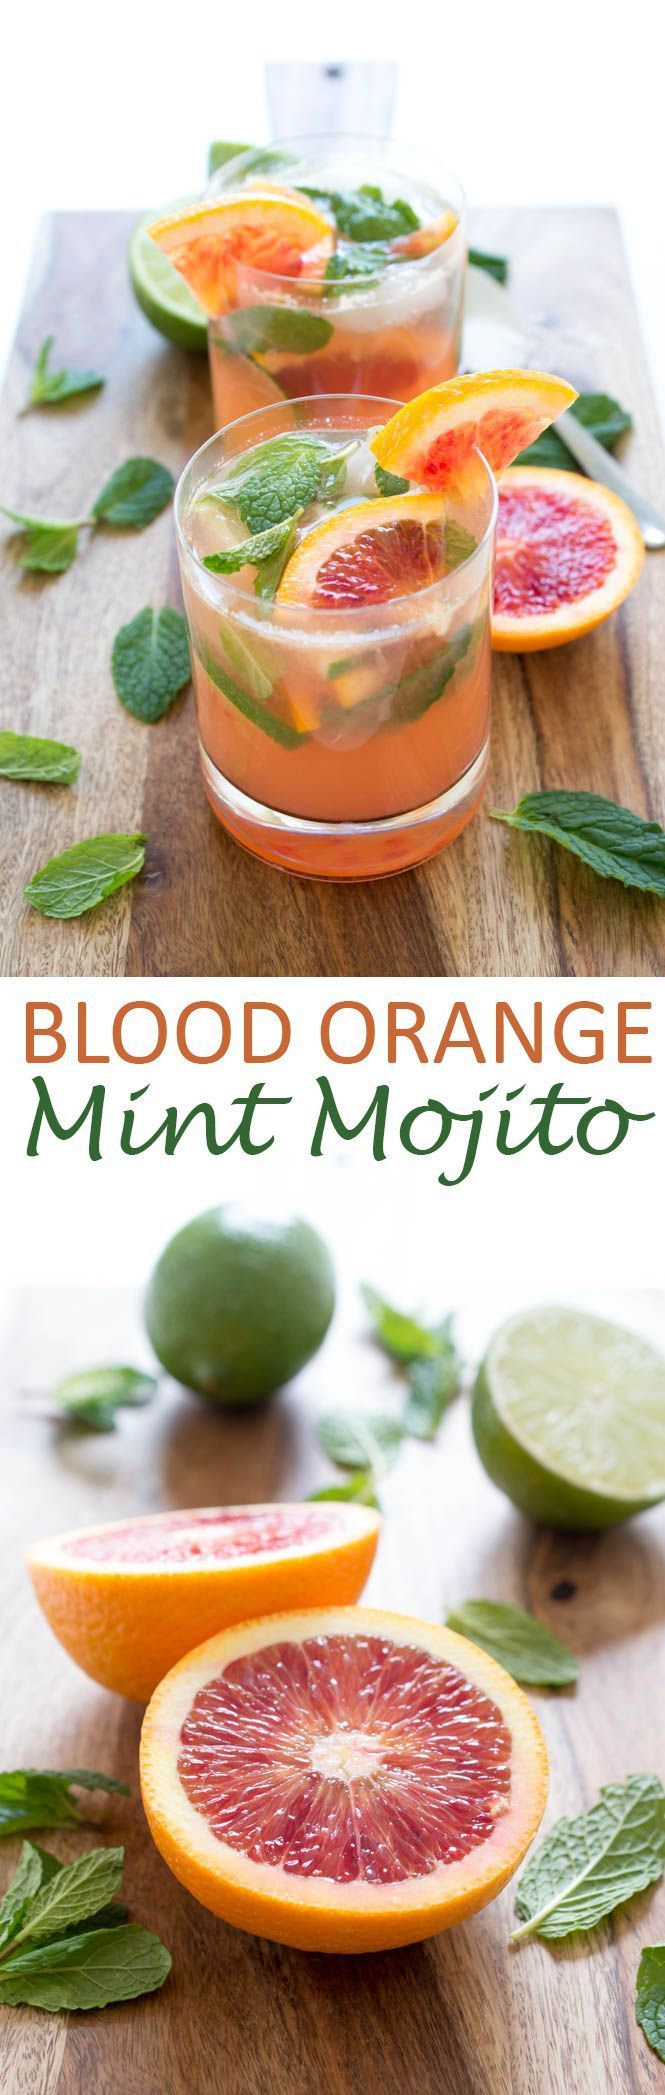 Blood Orange Mojito made with fresh mint, simple syrup, blood orange and lime juice. The perfect cocktail for any occasion!